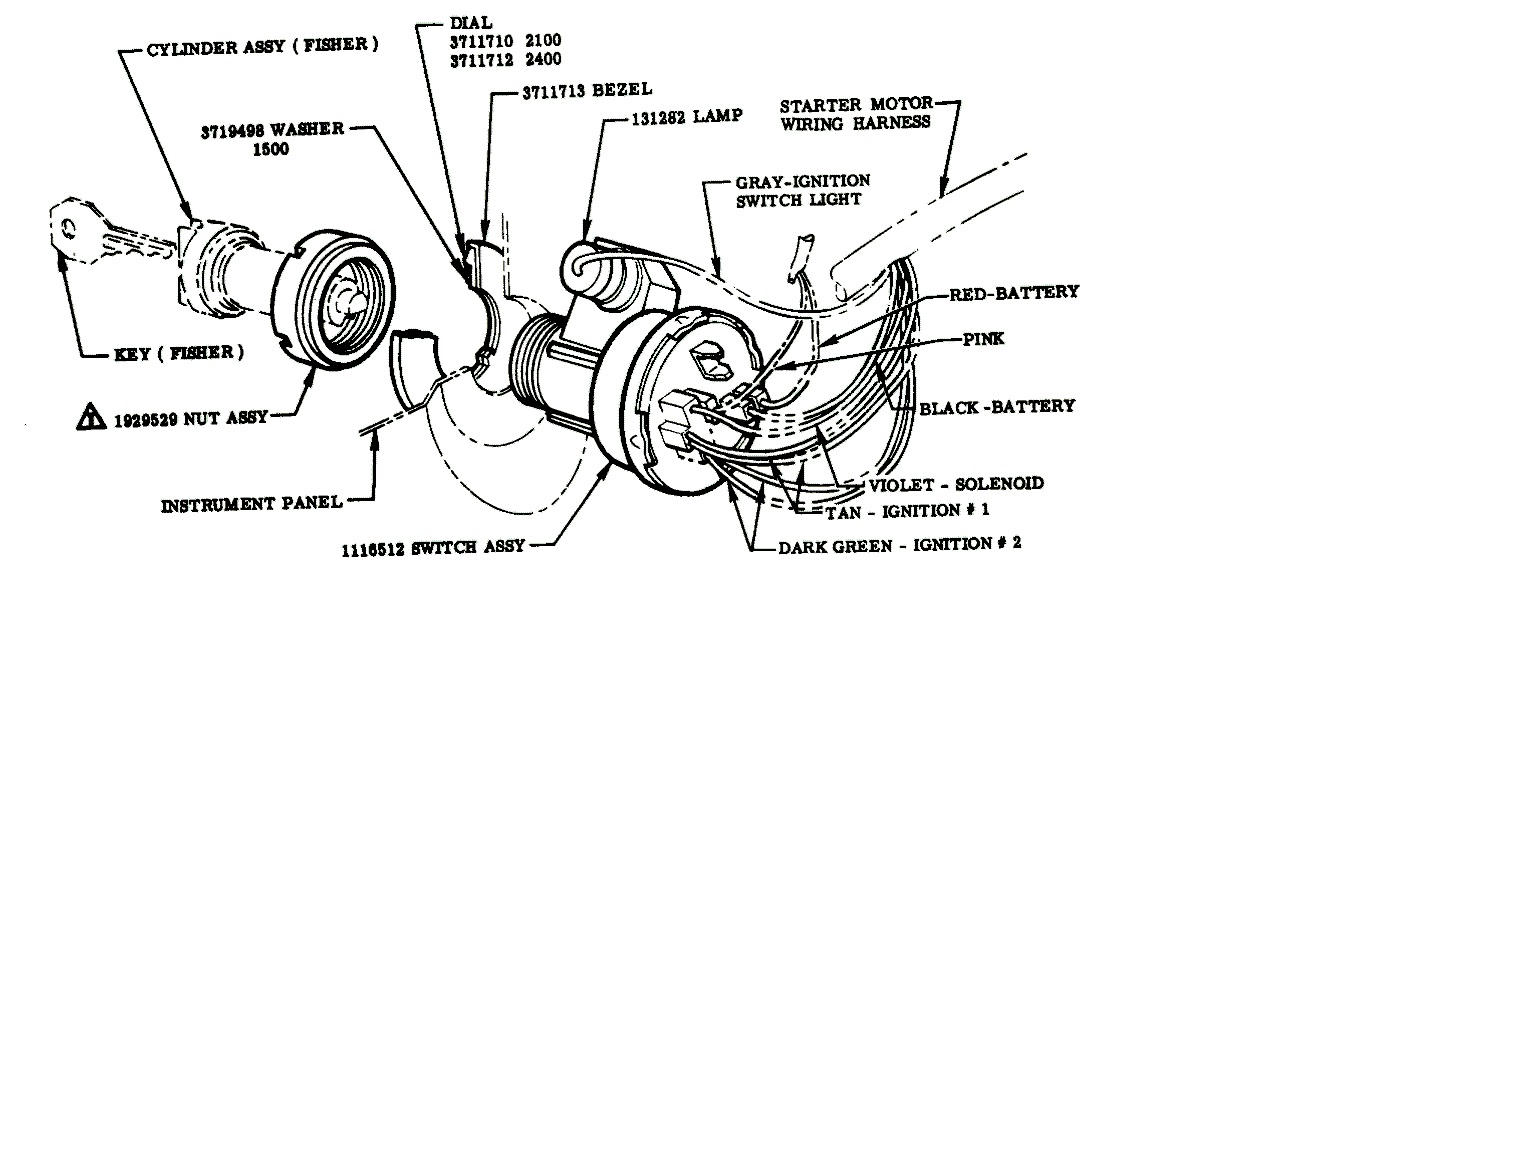 ford hei distributor wiring diagram ford ignition coil diagram hei ignition wiring diagram at readyjetset.co